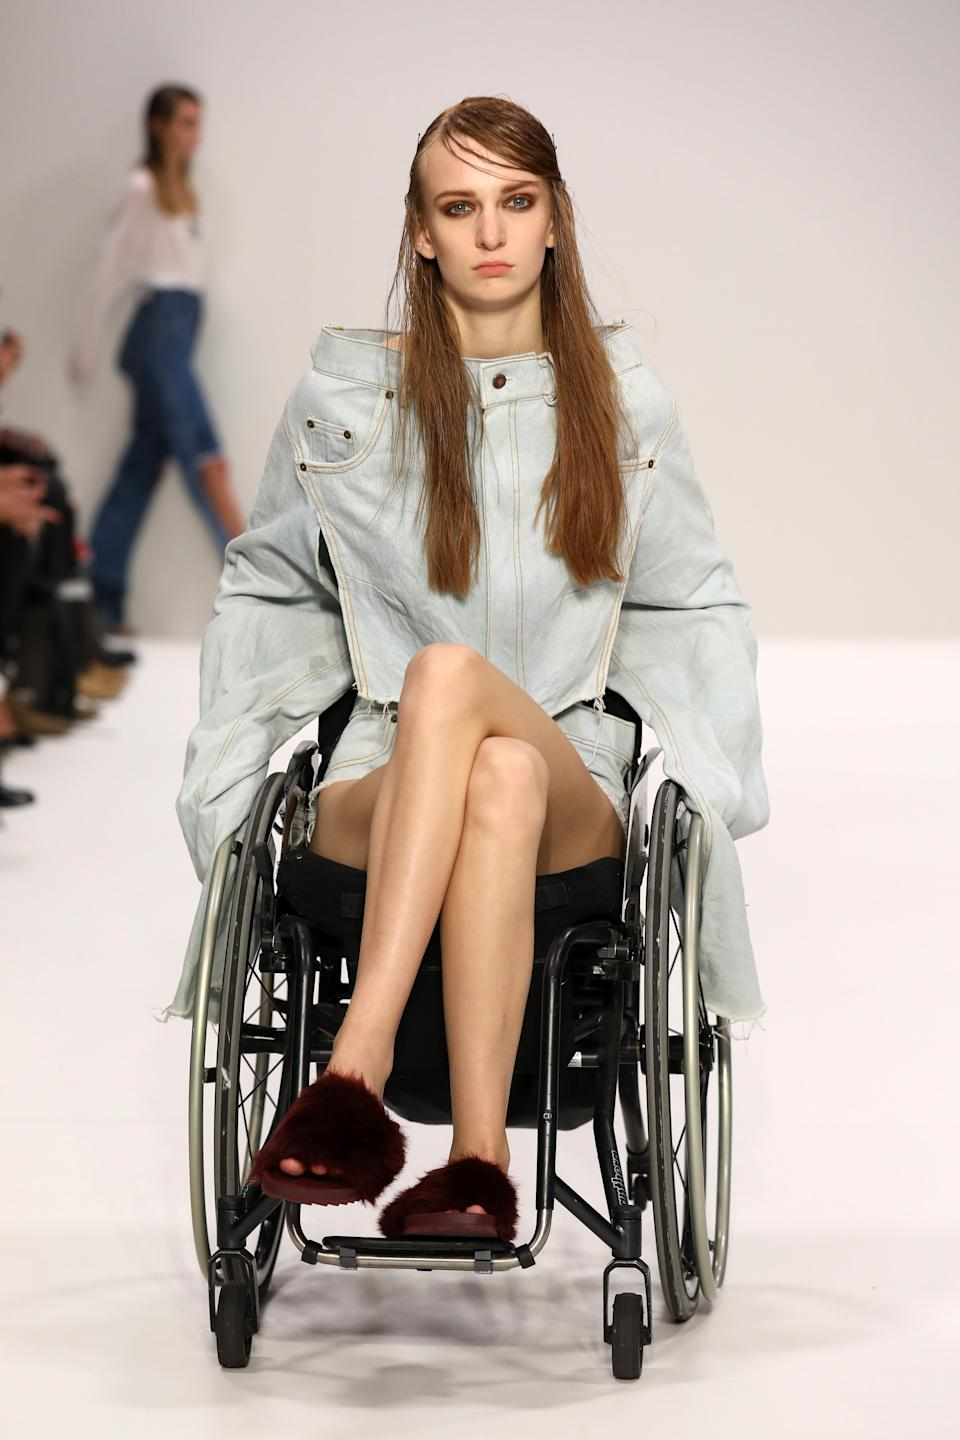 She found that jeans are the hardest thing for disabled people to wear so based her collection on denim [Photo: Getty]